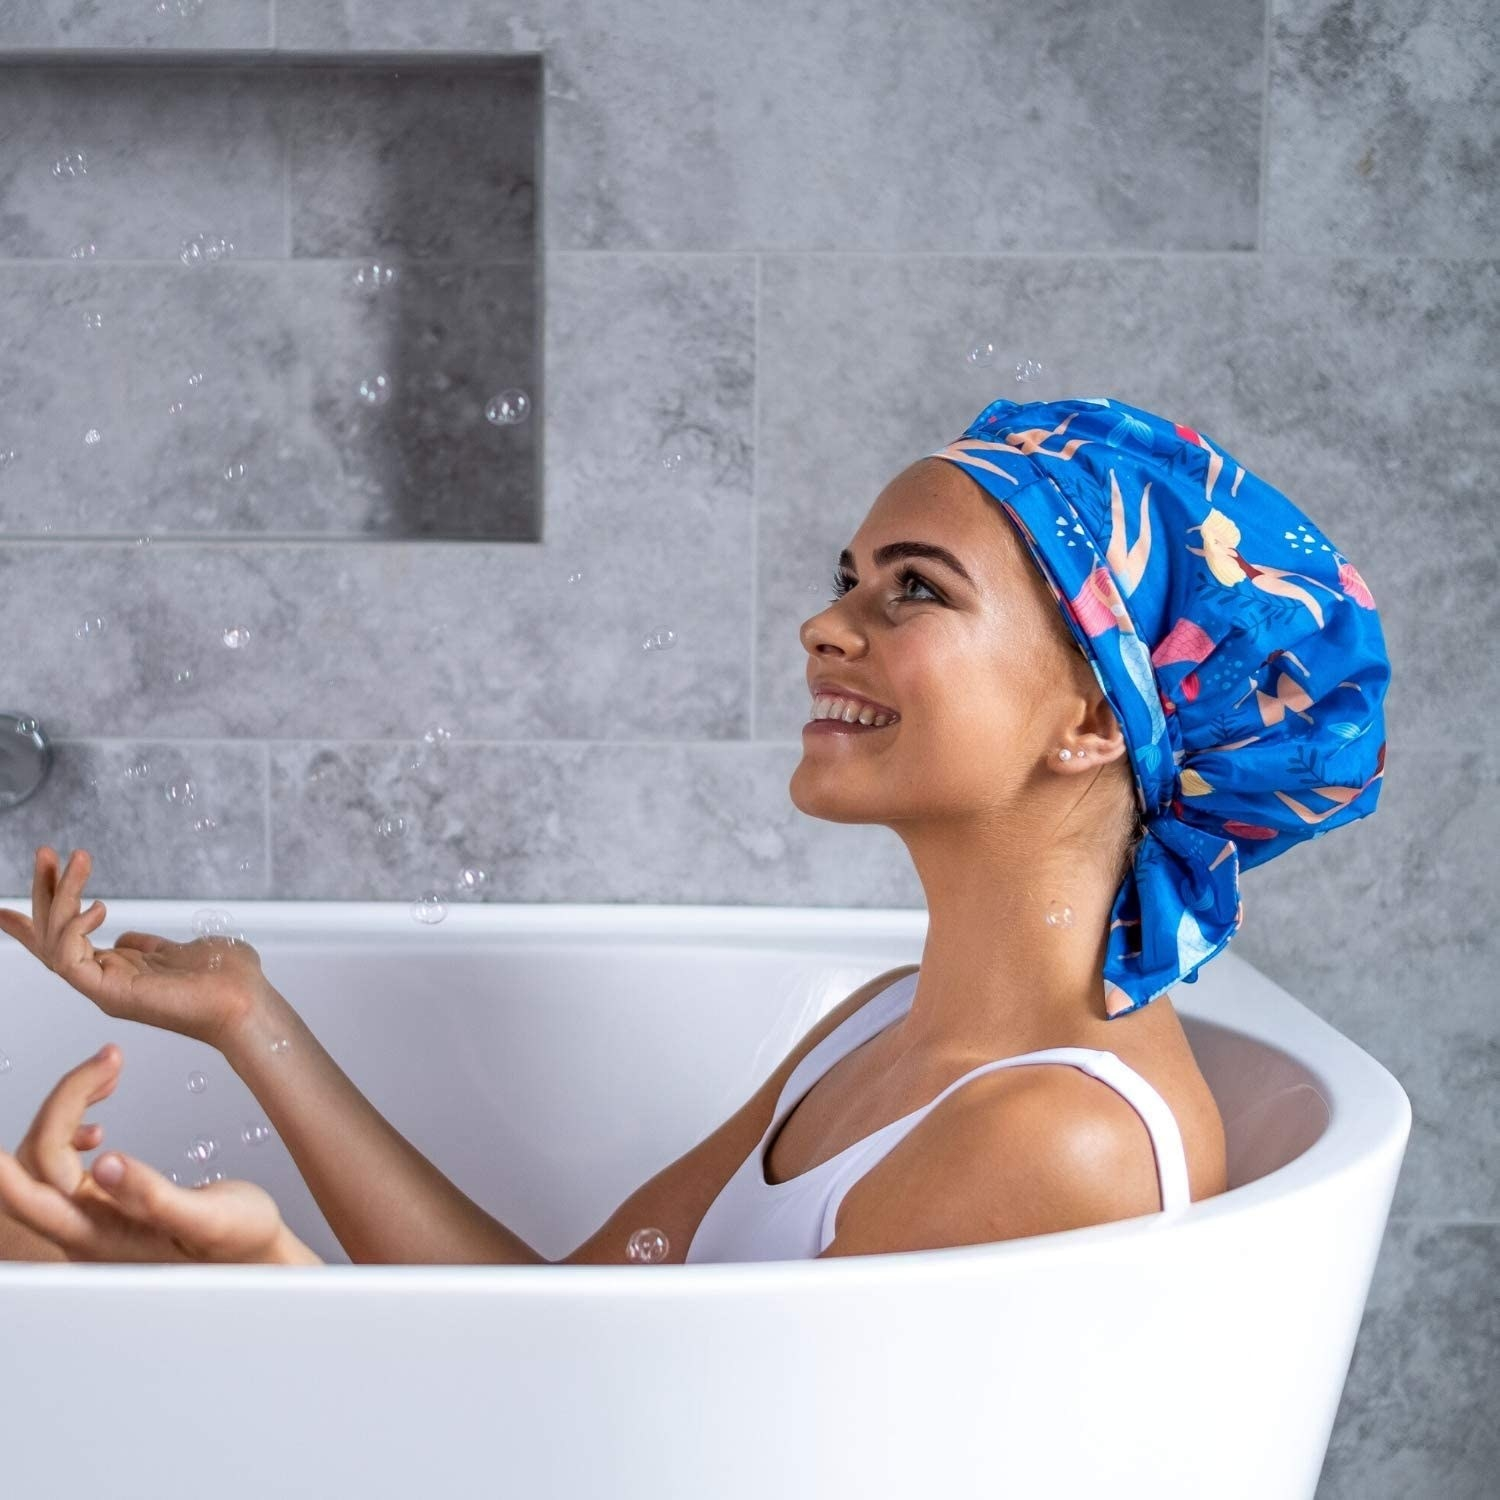 A smiling person wearing the shower cap in a bath tub.